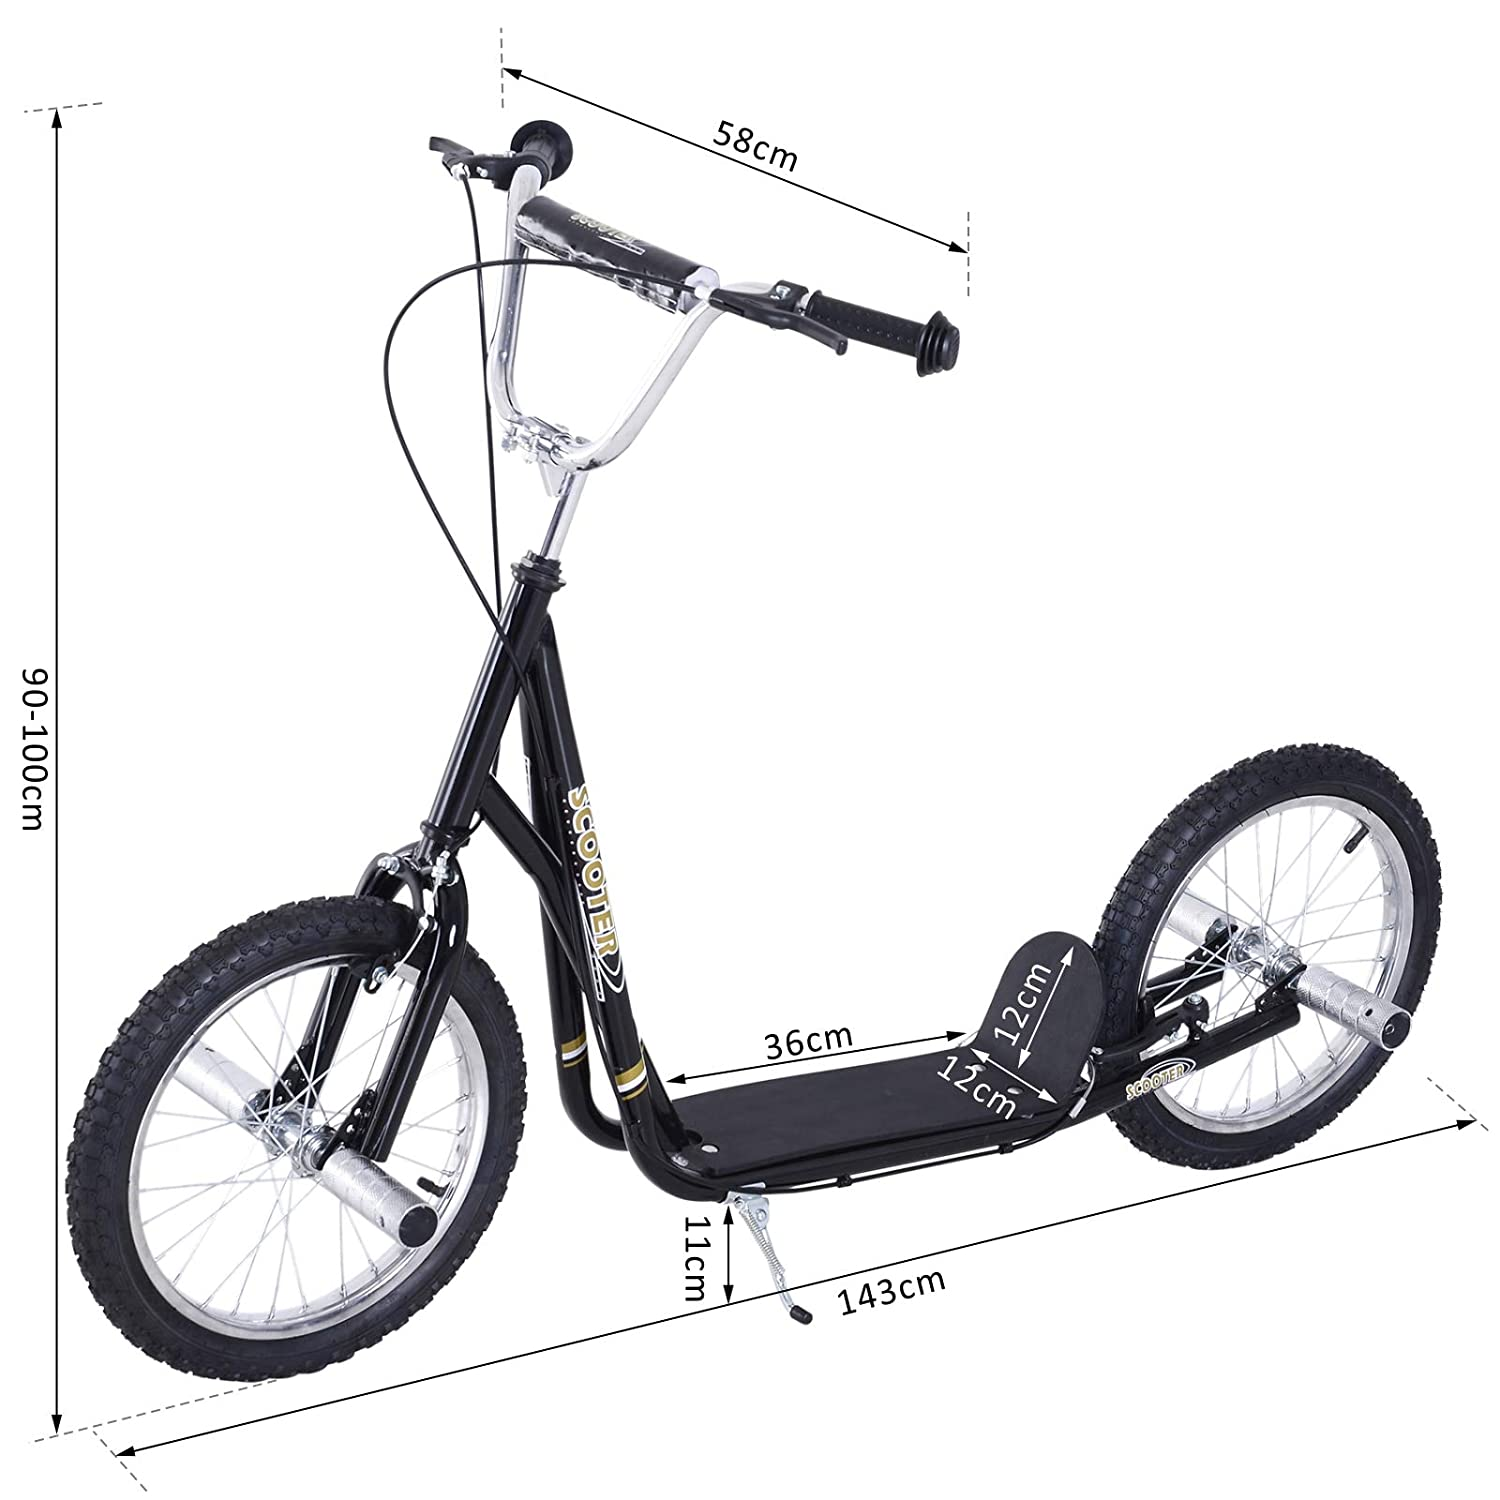 f463feac8ef HOMCOM Adult Teen Push Scooter Kids Children Stunt Scooter Bike Bicycle  Ride On 16